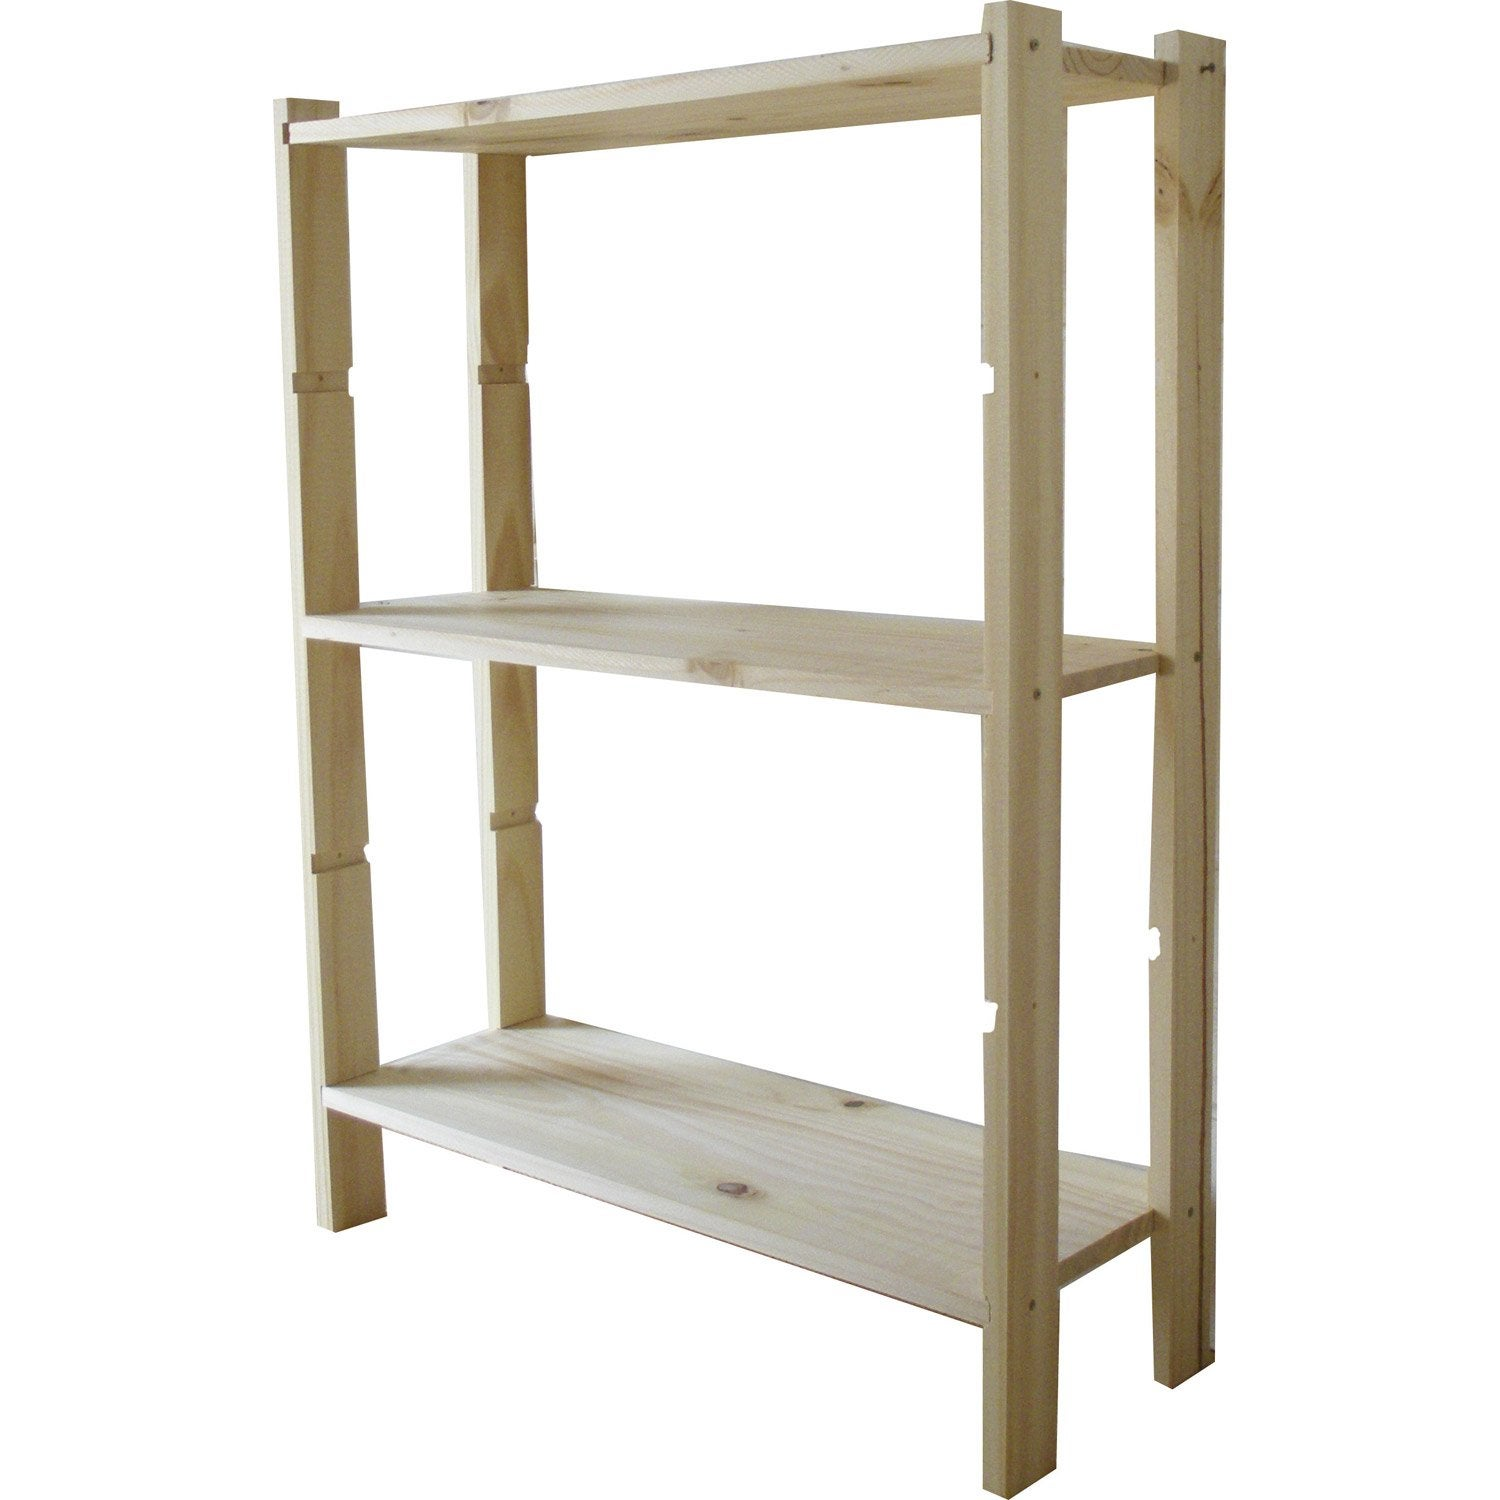 Etag re en pin 3 tablettes leine l65xh90xp28cm leroy merlin - Etagere bois leroy merlin ...